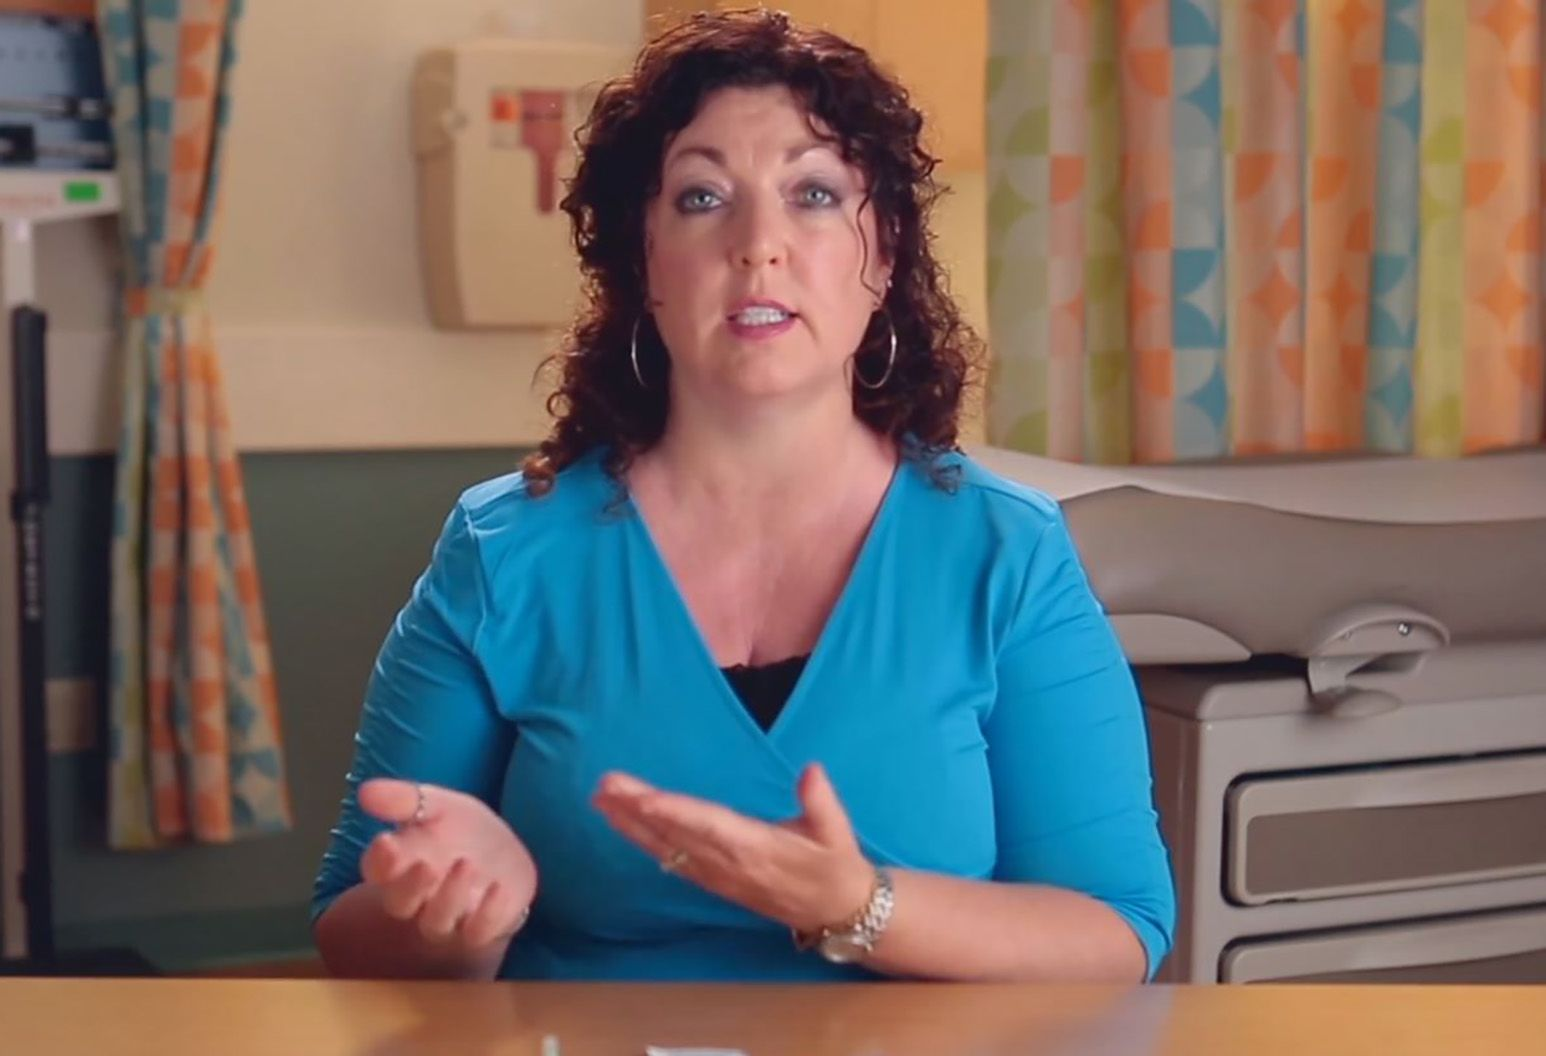 A lady with curly brown hair wearing a blue shirt and silver hoops is speaking. She's sitting in a patient room in a hospital.